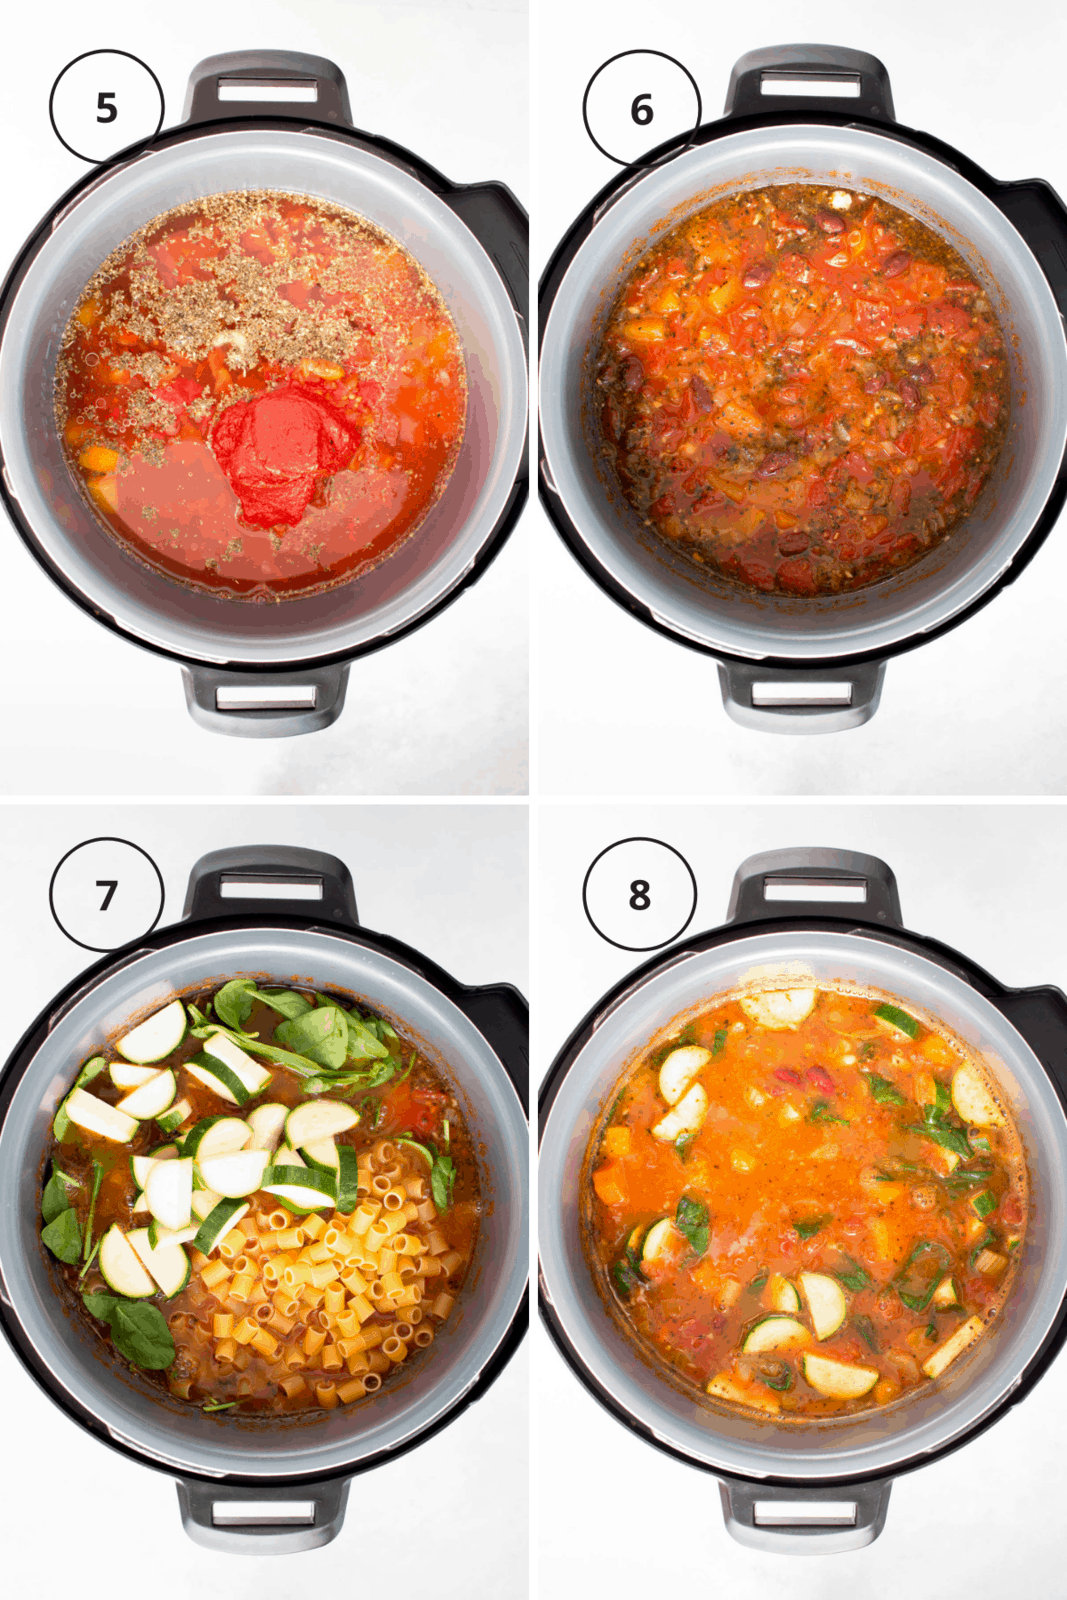 Step by step instructions for making minestrone in the Instant Pot.